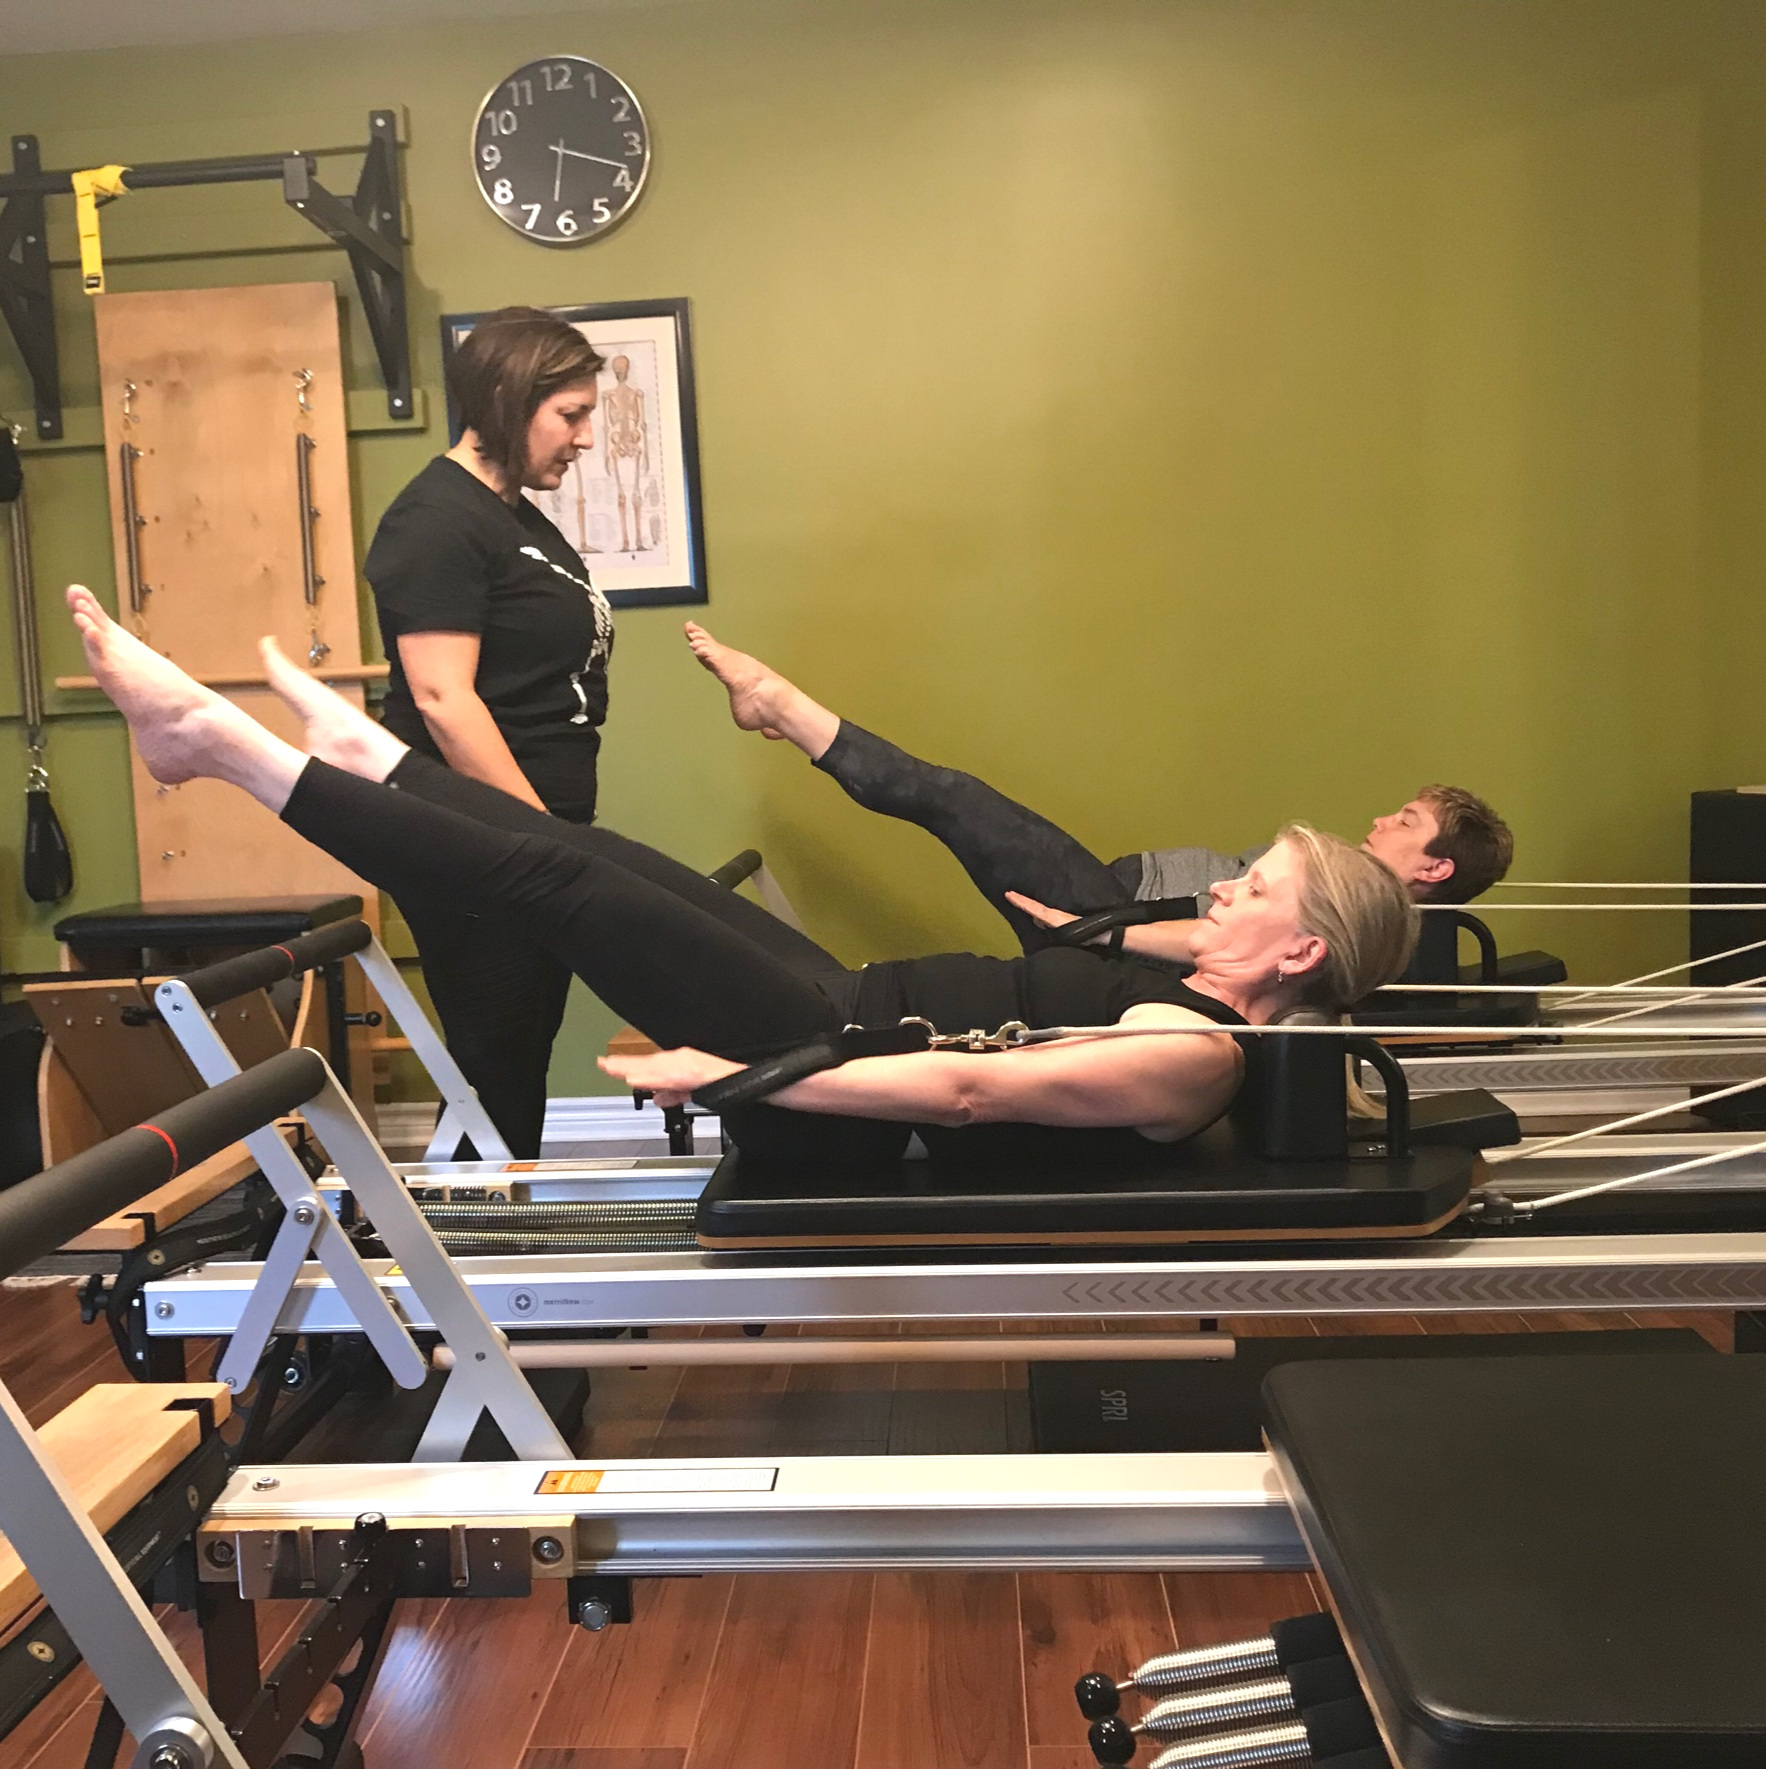 - REFORMER PLUS MIXWithin this class, you will experience the Pilates repertoire on a combination of the Reformer, in addition to either the Wunda Chair, Spine Corrector, Mat, Wall, TRX, etc. Mix it all up and keep it exciting and challenging!